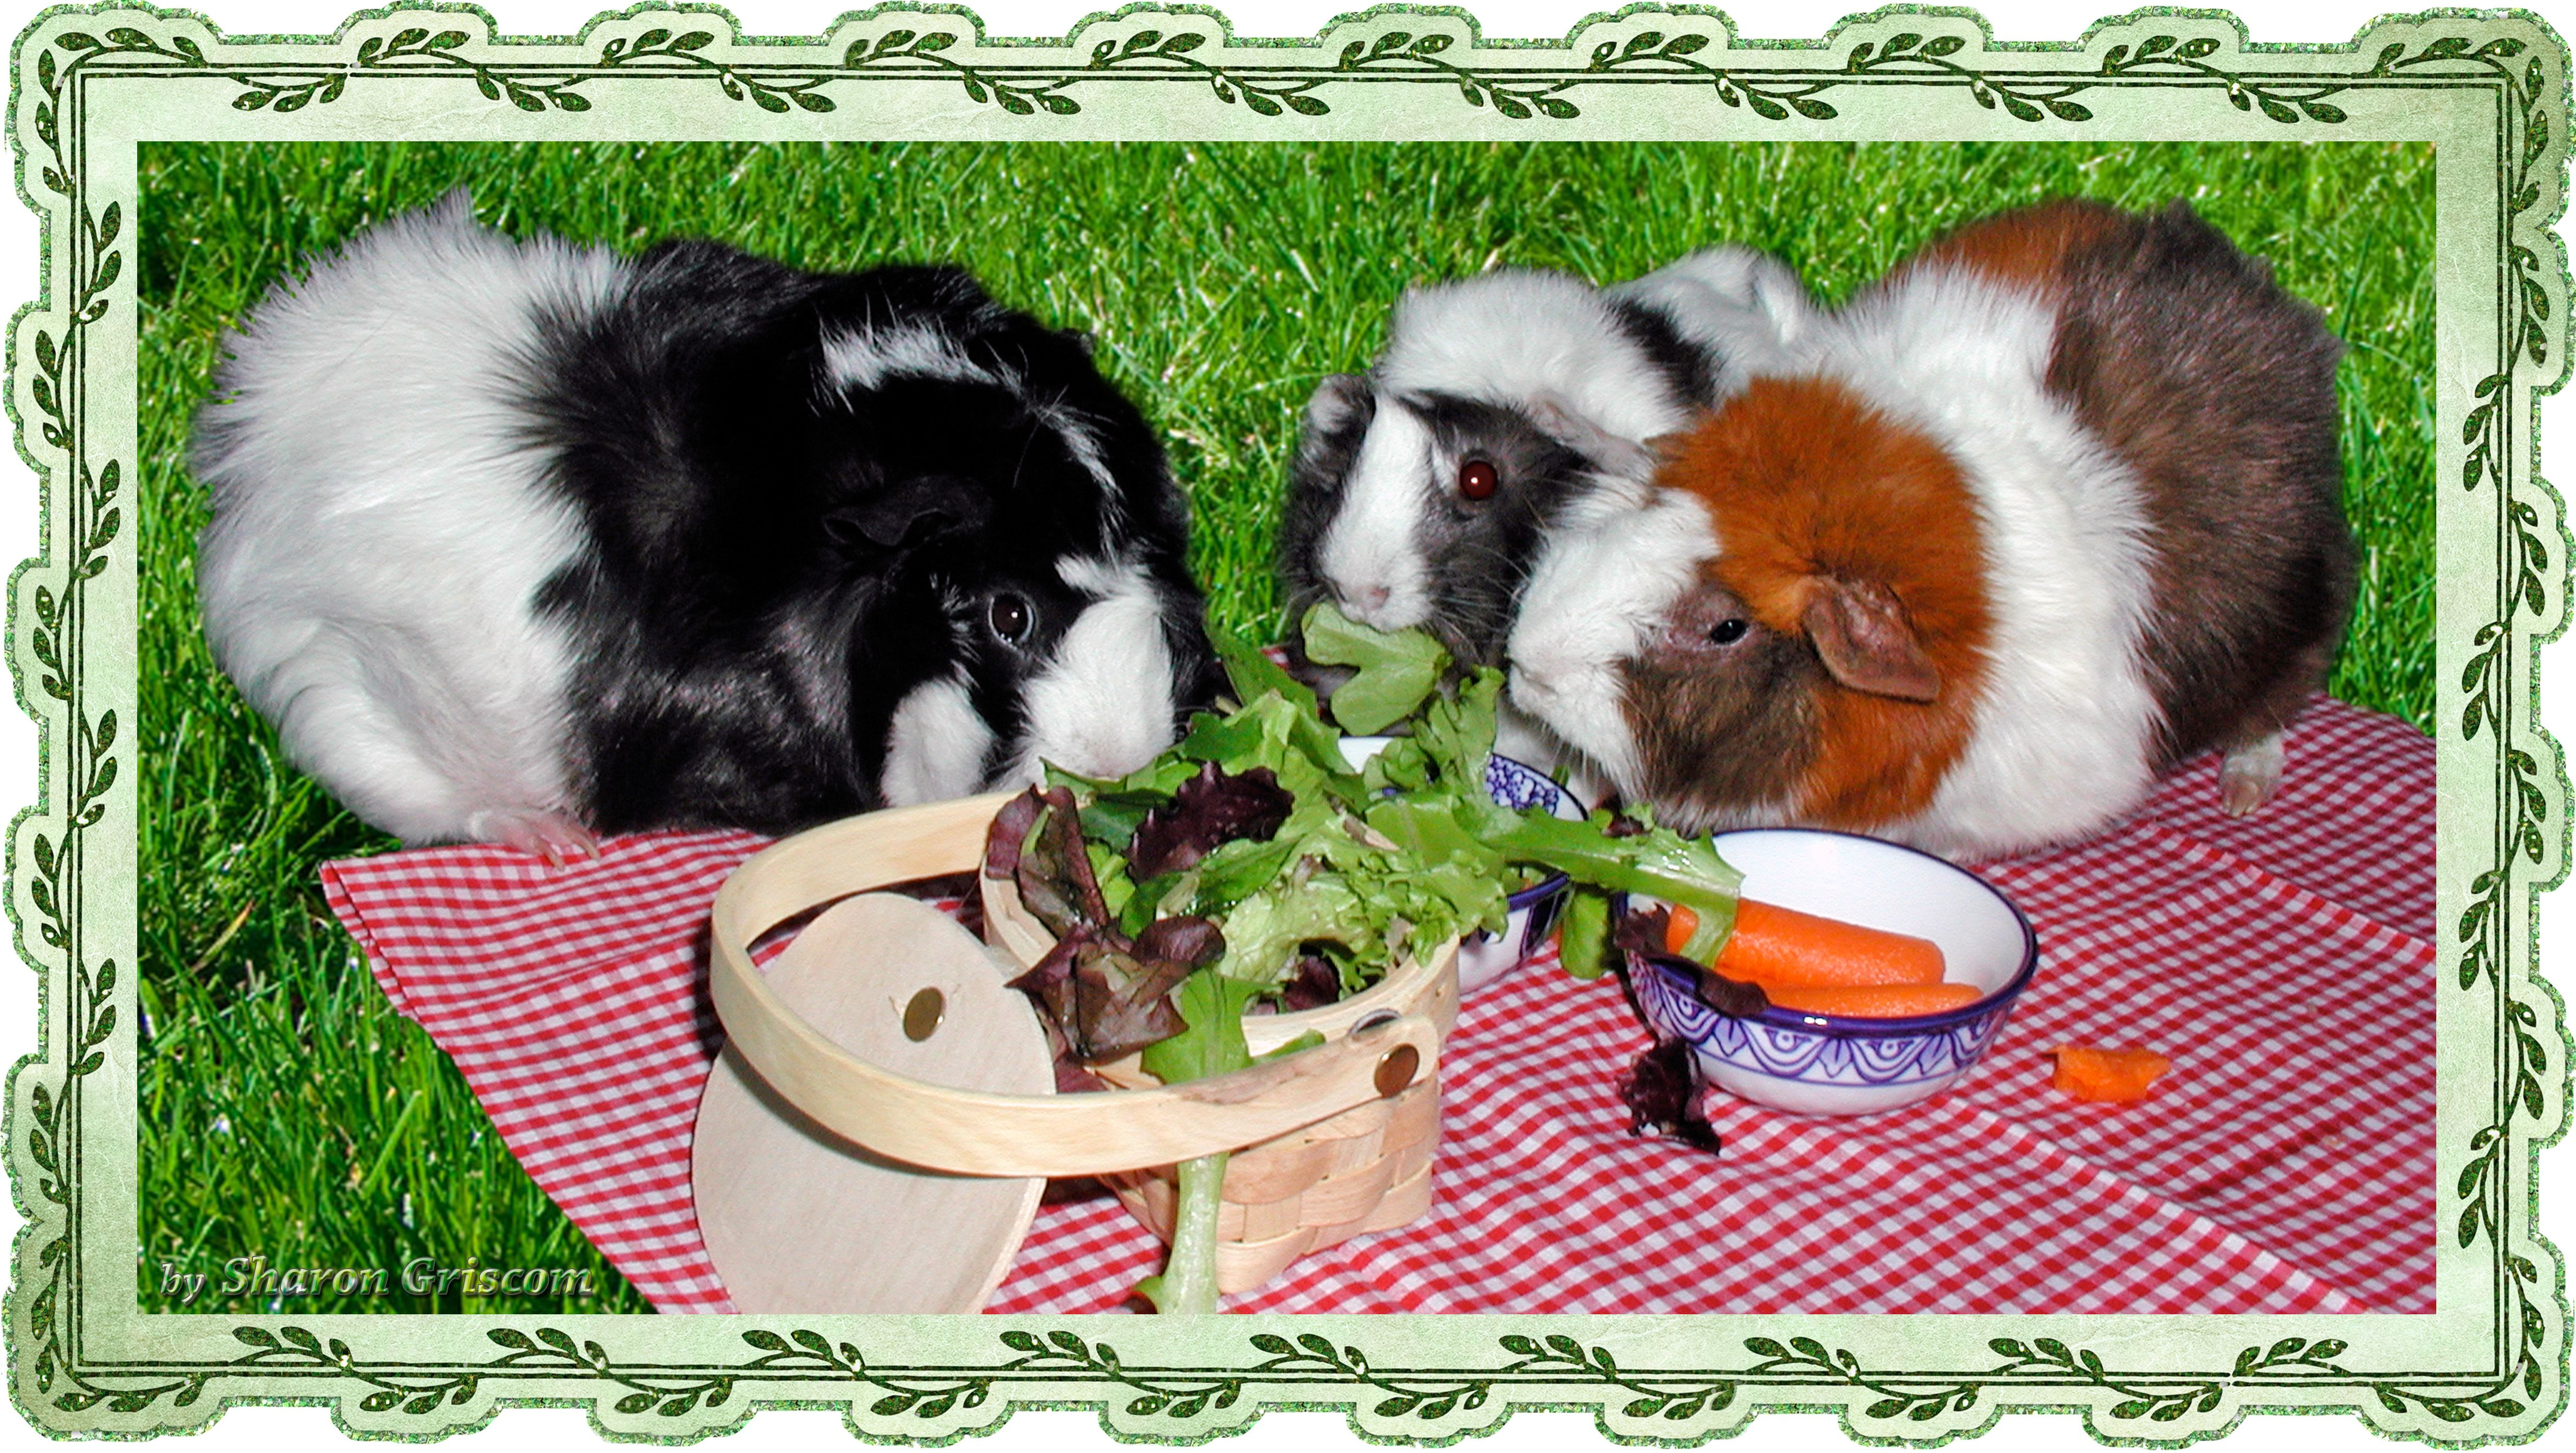 guinea pigs Allegra Ruby and Cosey having a picnic